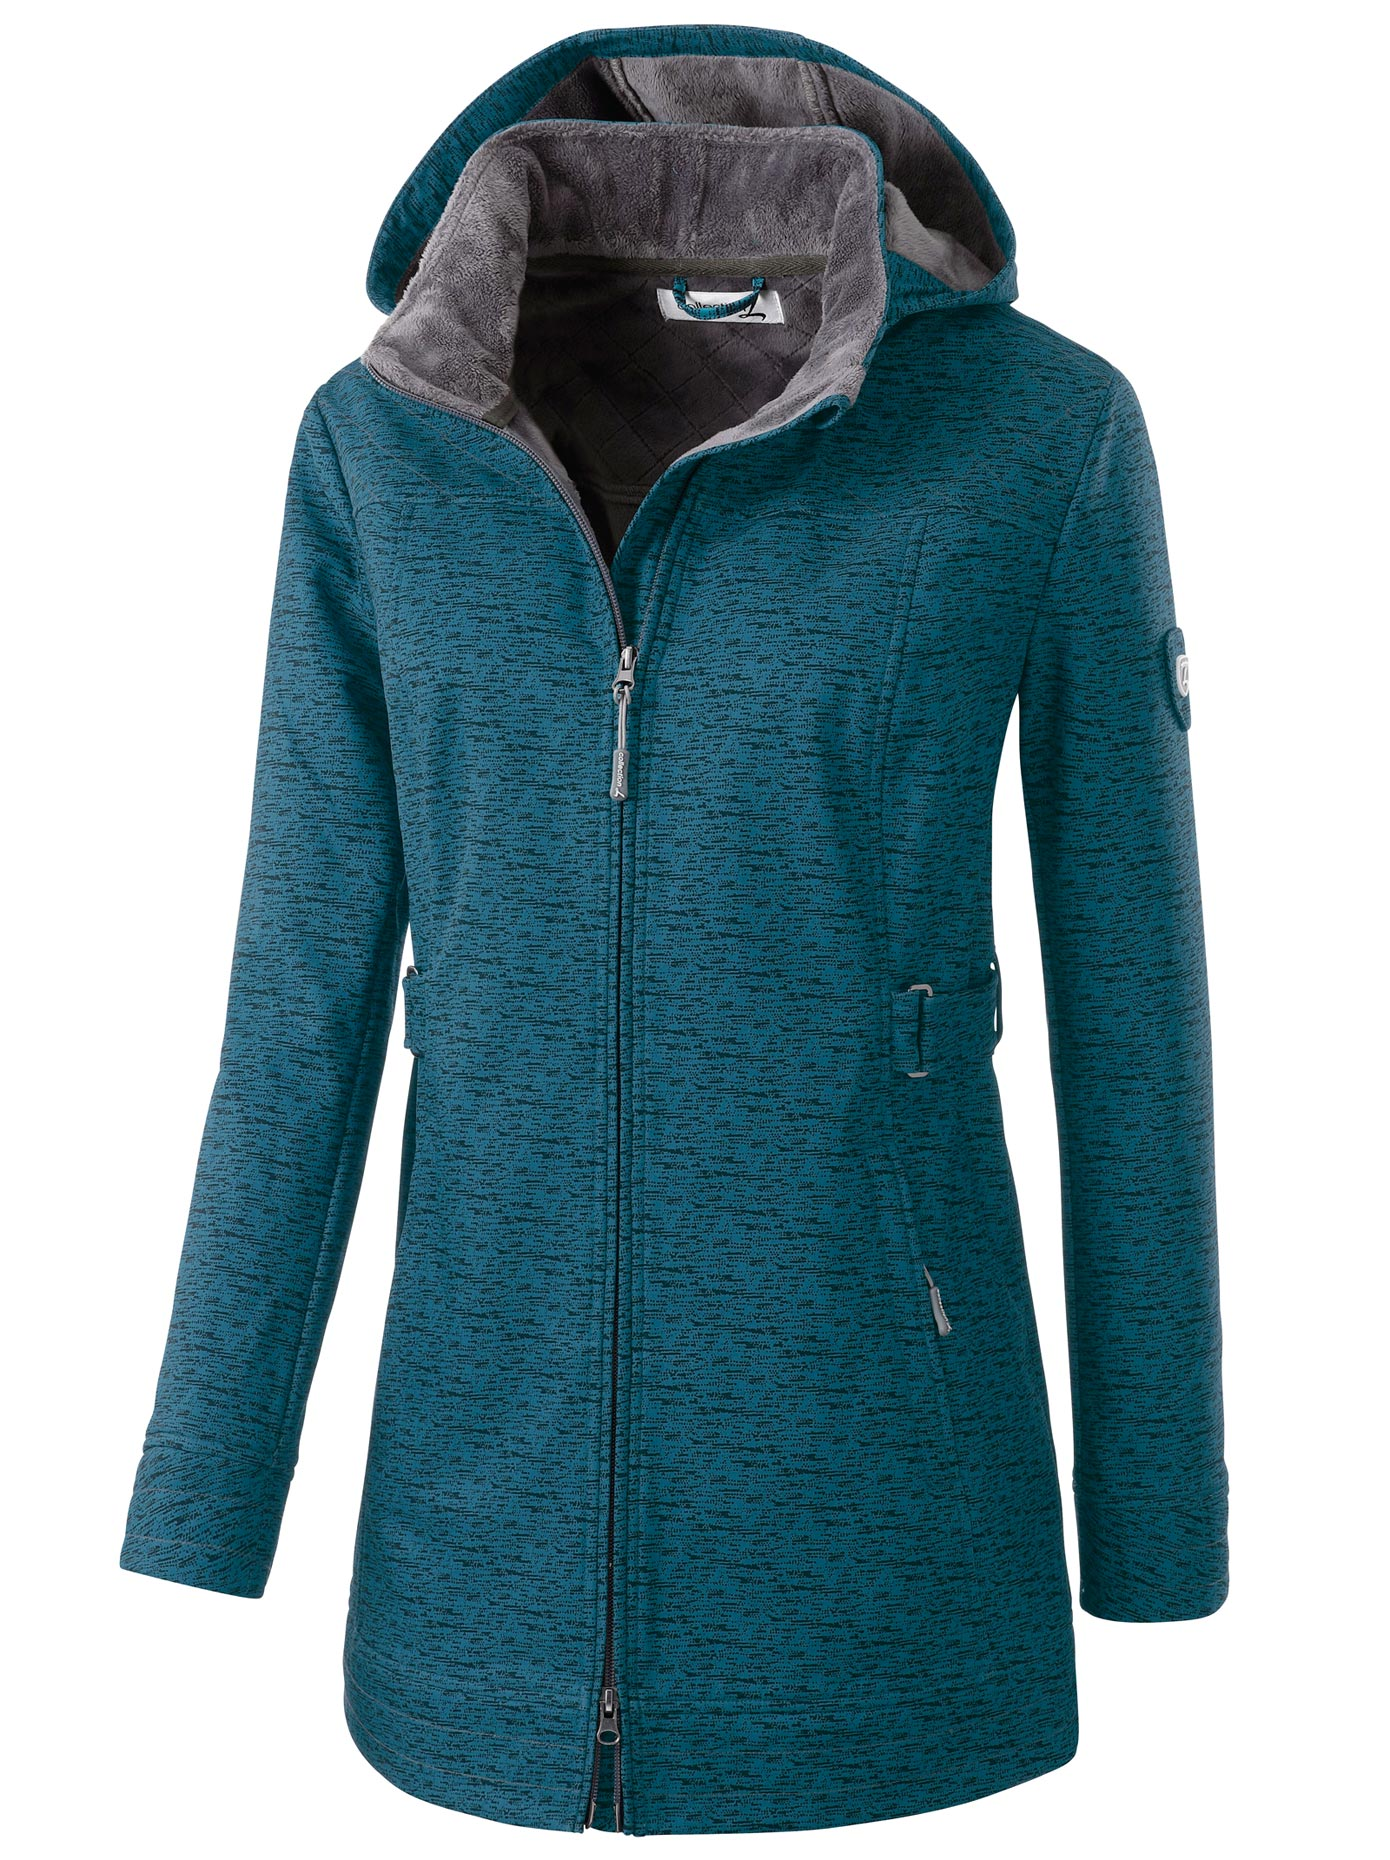 Jacken - Collection L Damen Softshell Jacke grün  - Onlineshop Witt Weiden